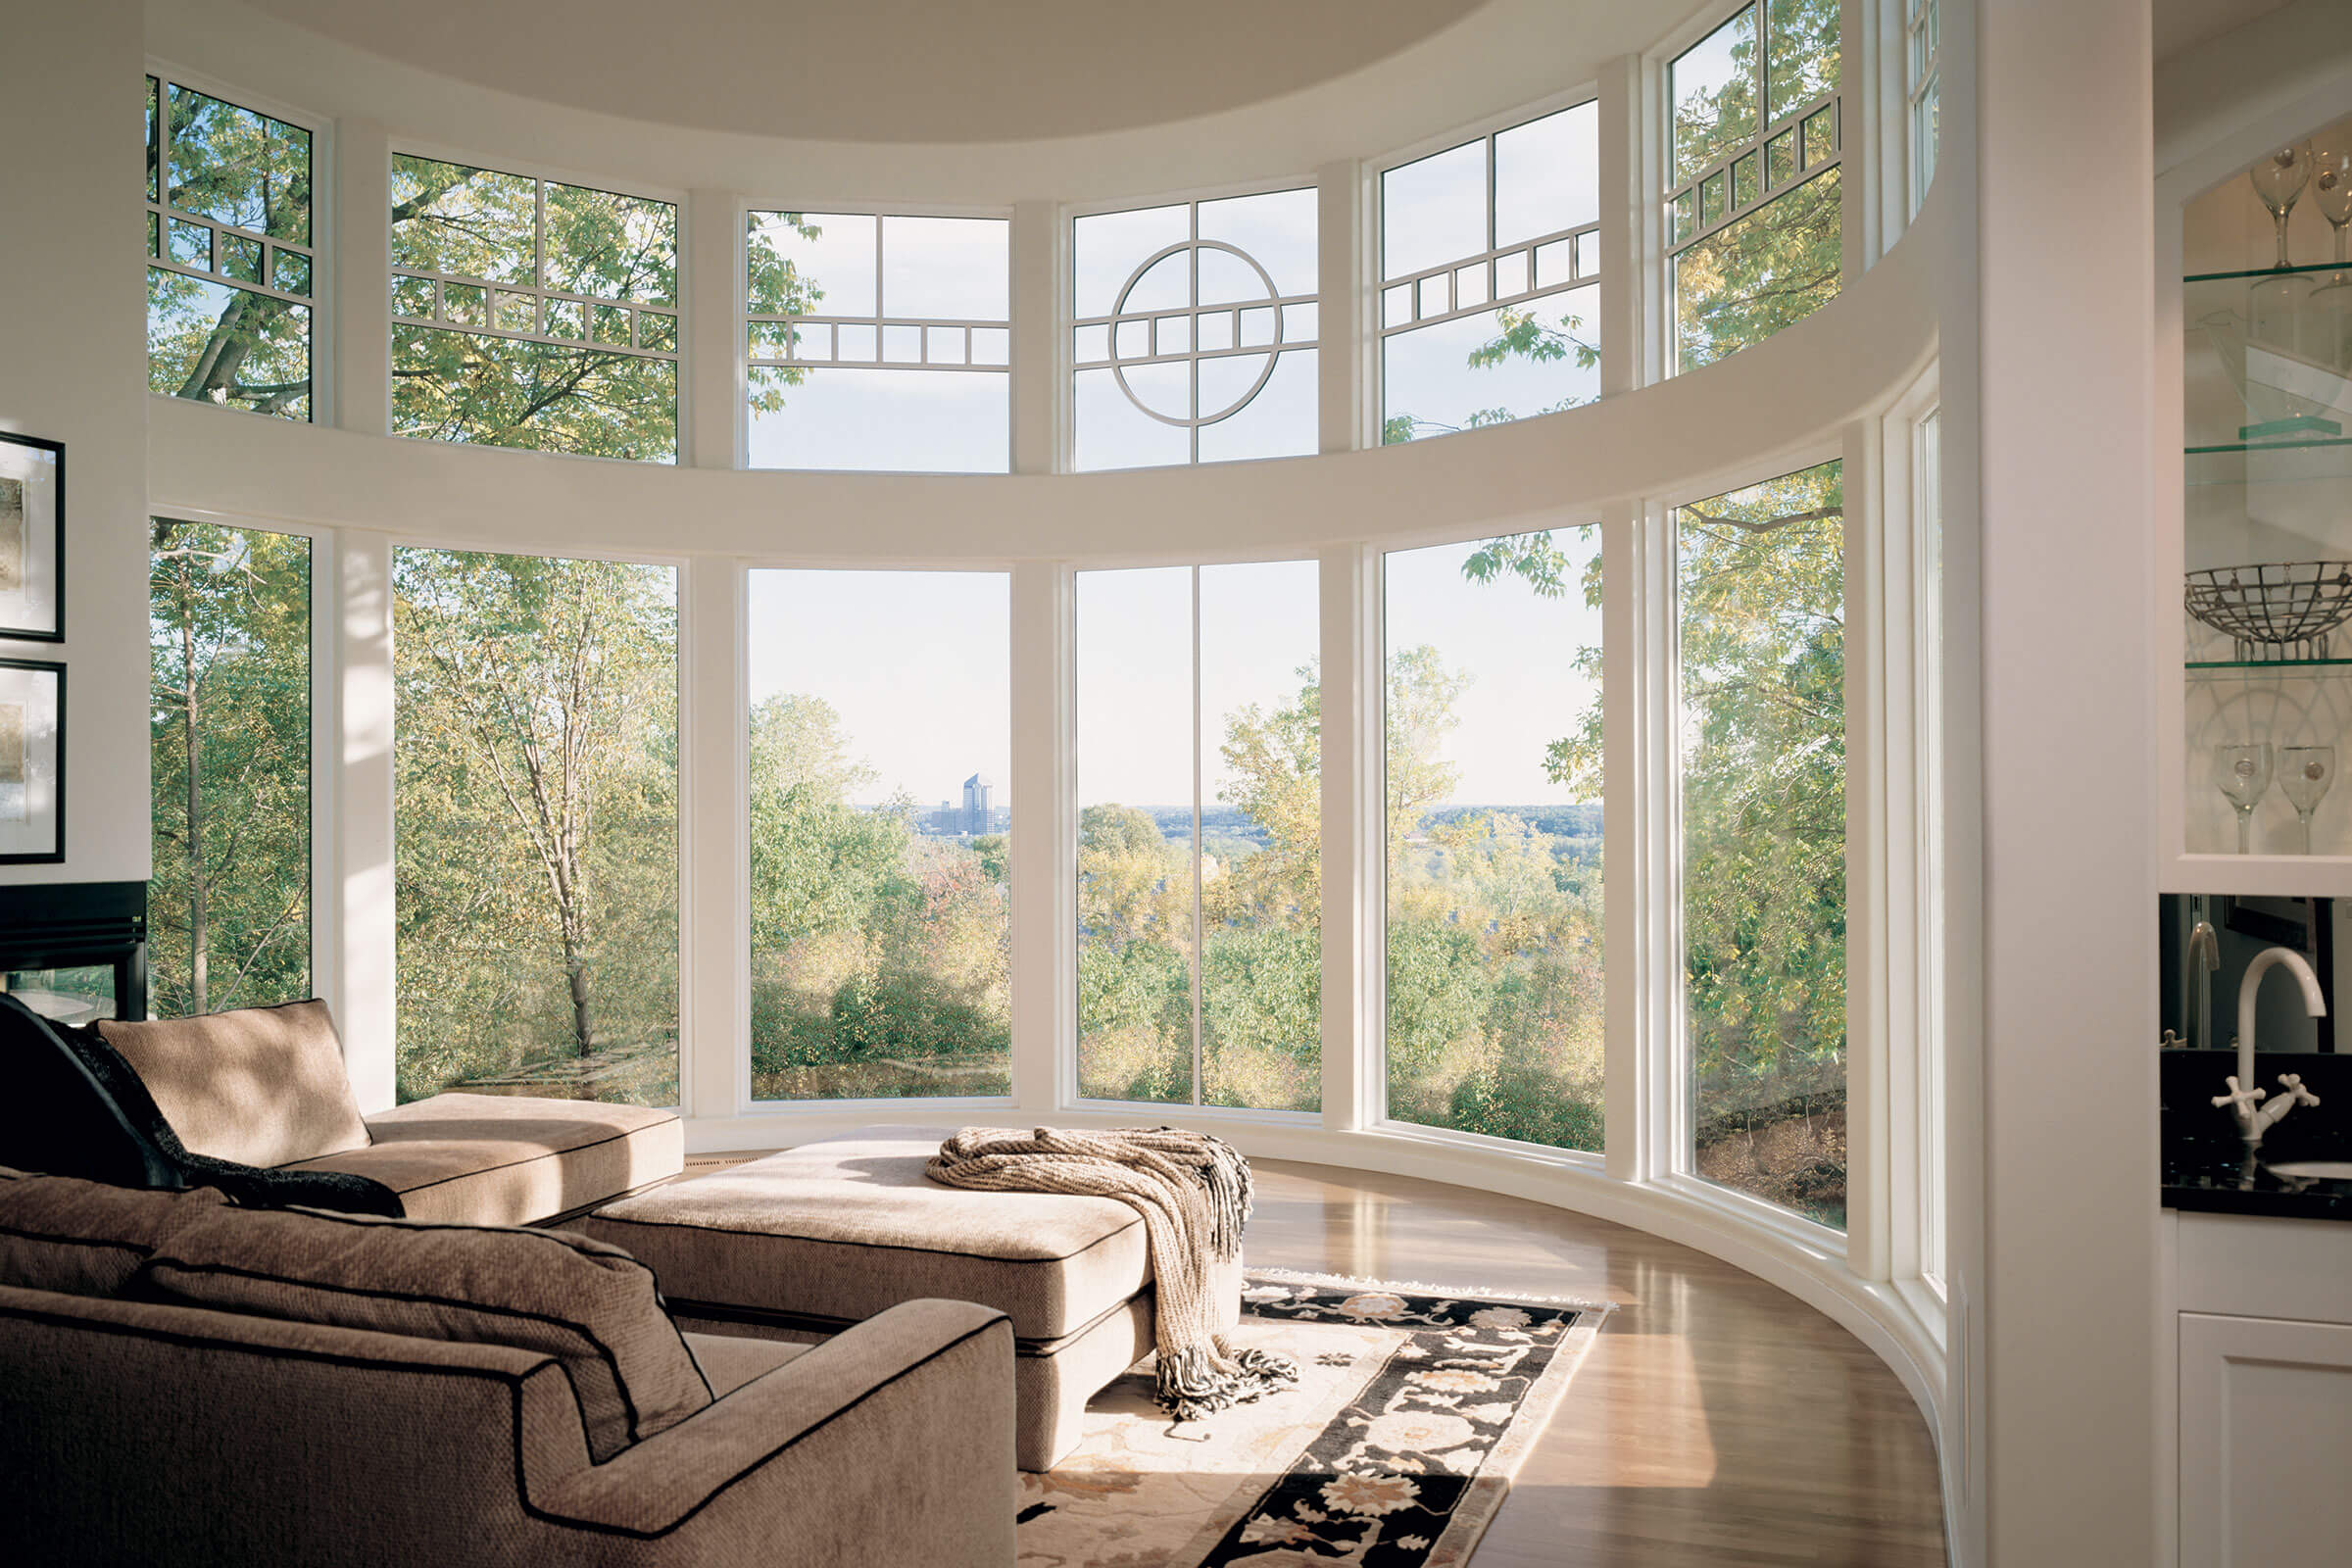 Living Room With Signature Bow Windows